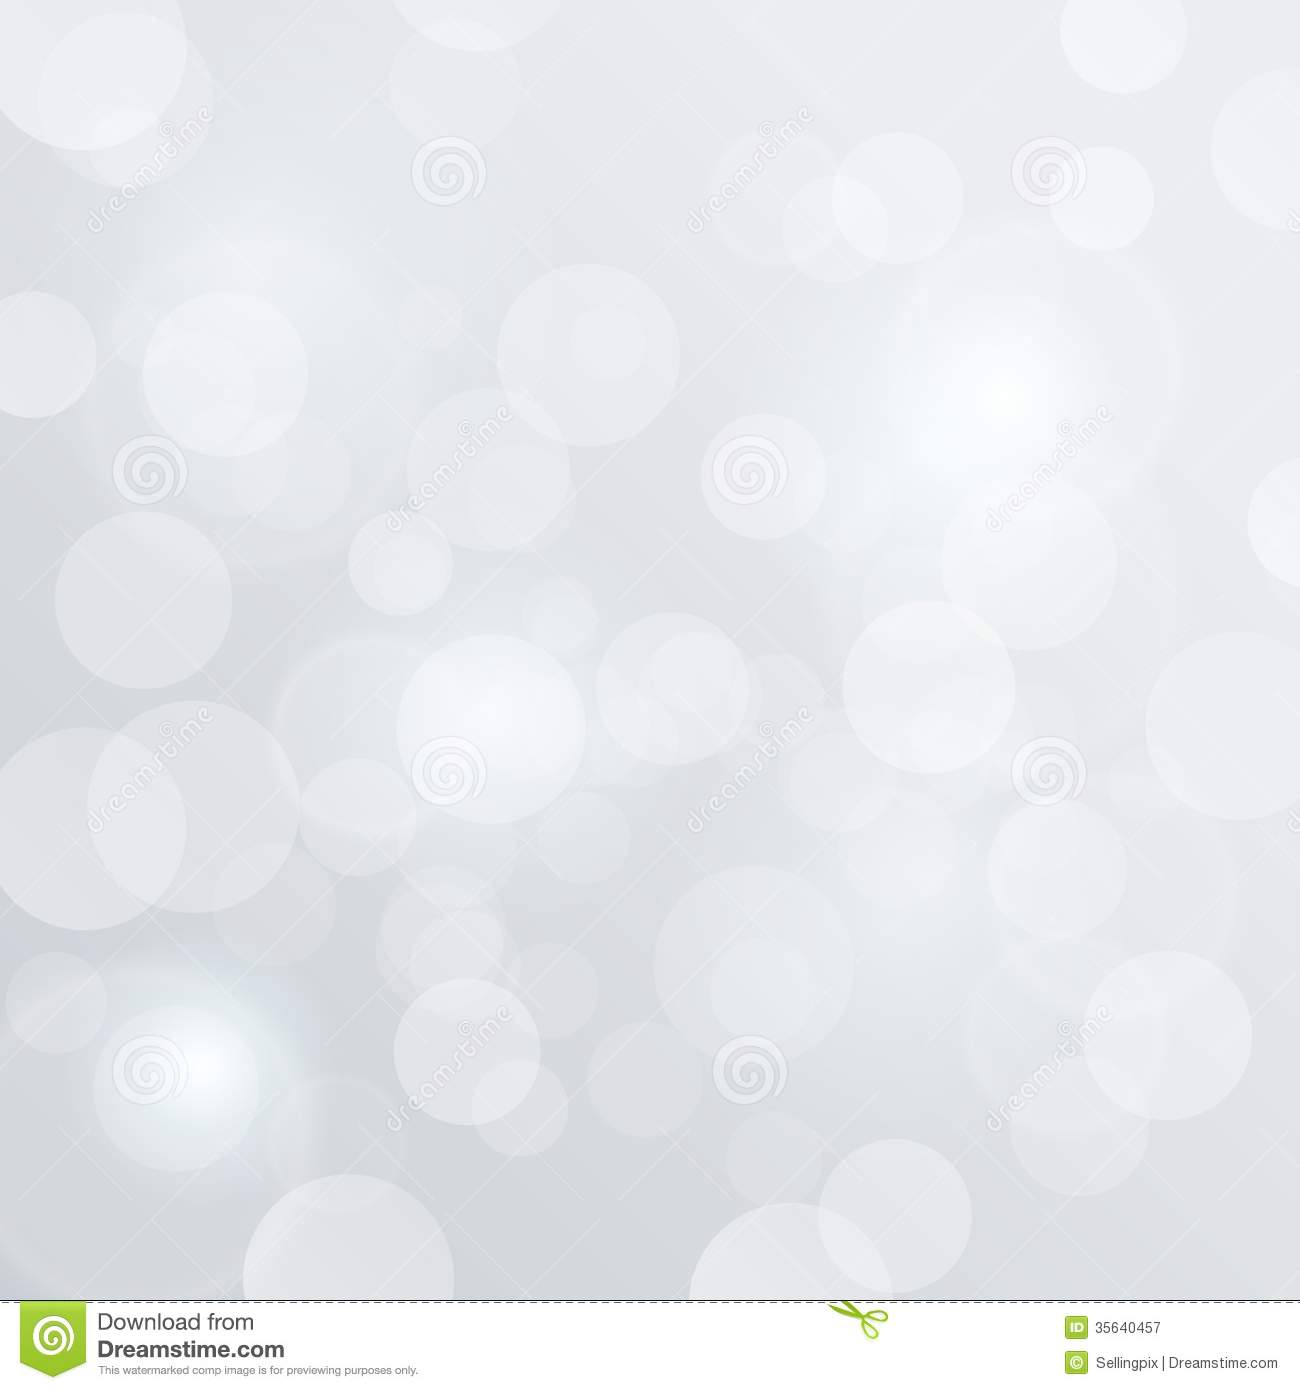 Grayscale Girl Wallpaper Bokeh Blurred Vector White Glow Background Abstra Royalty